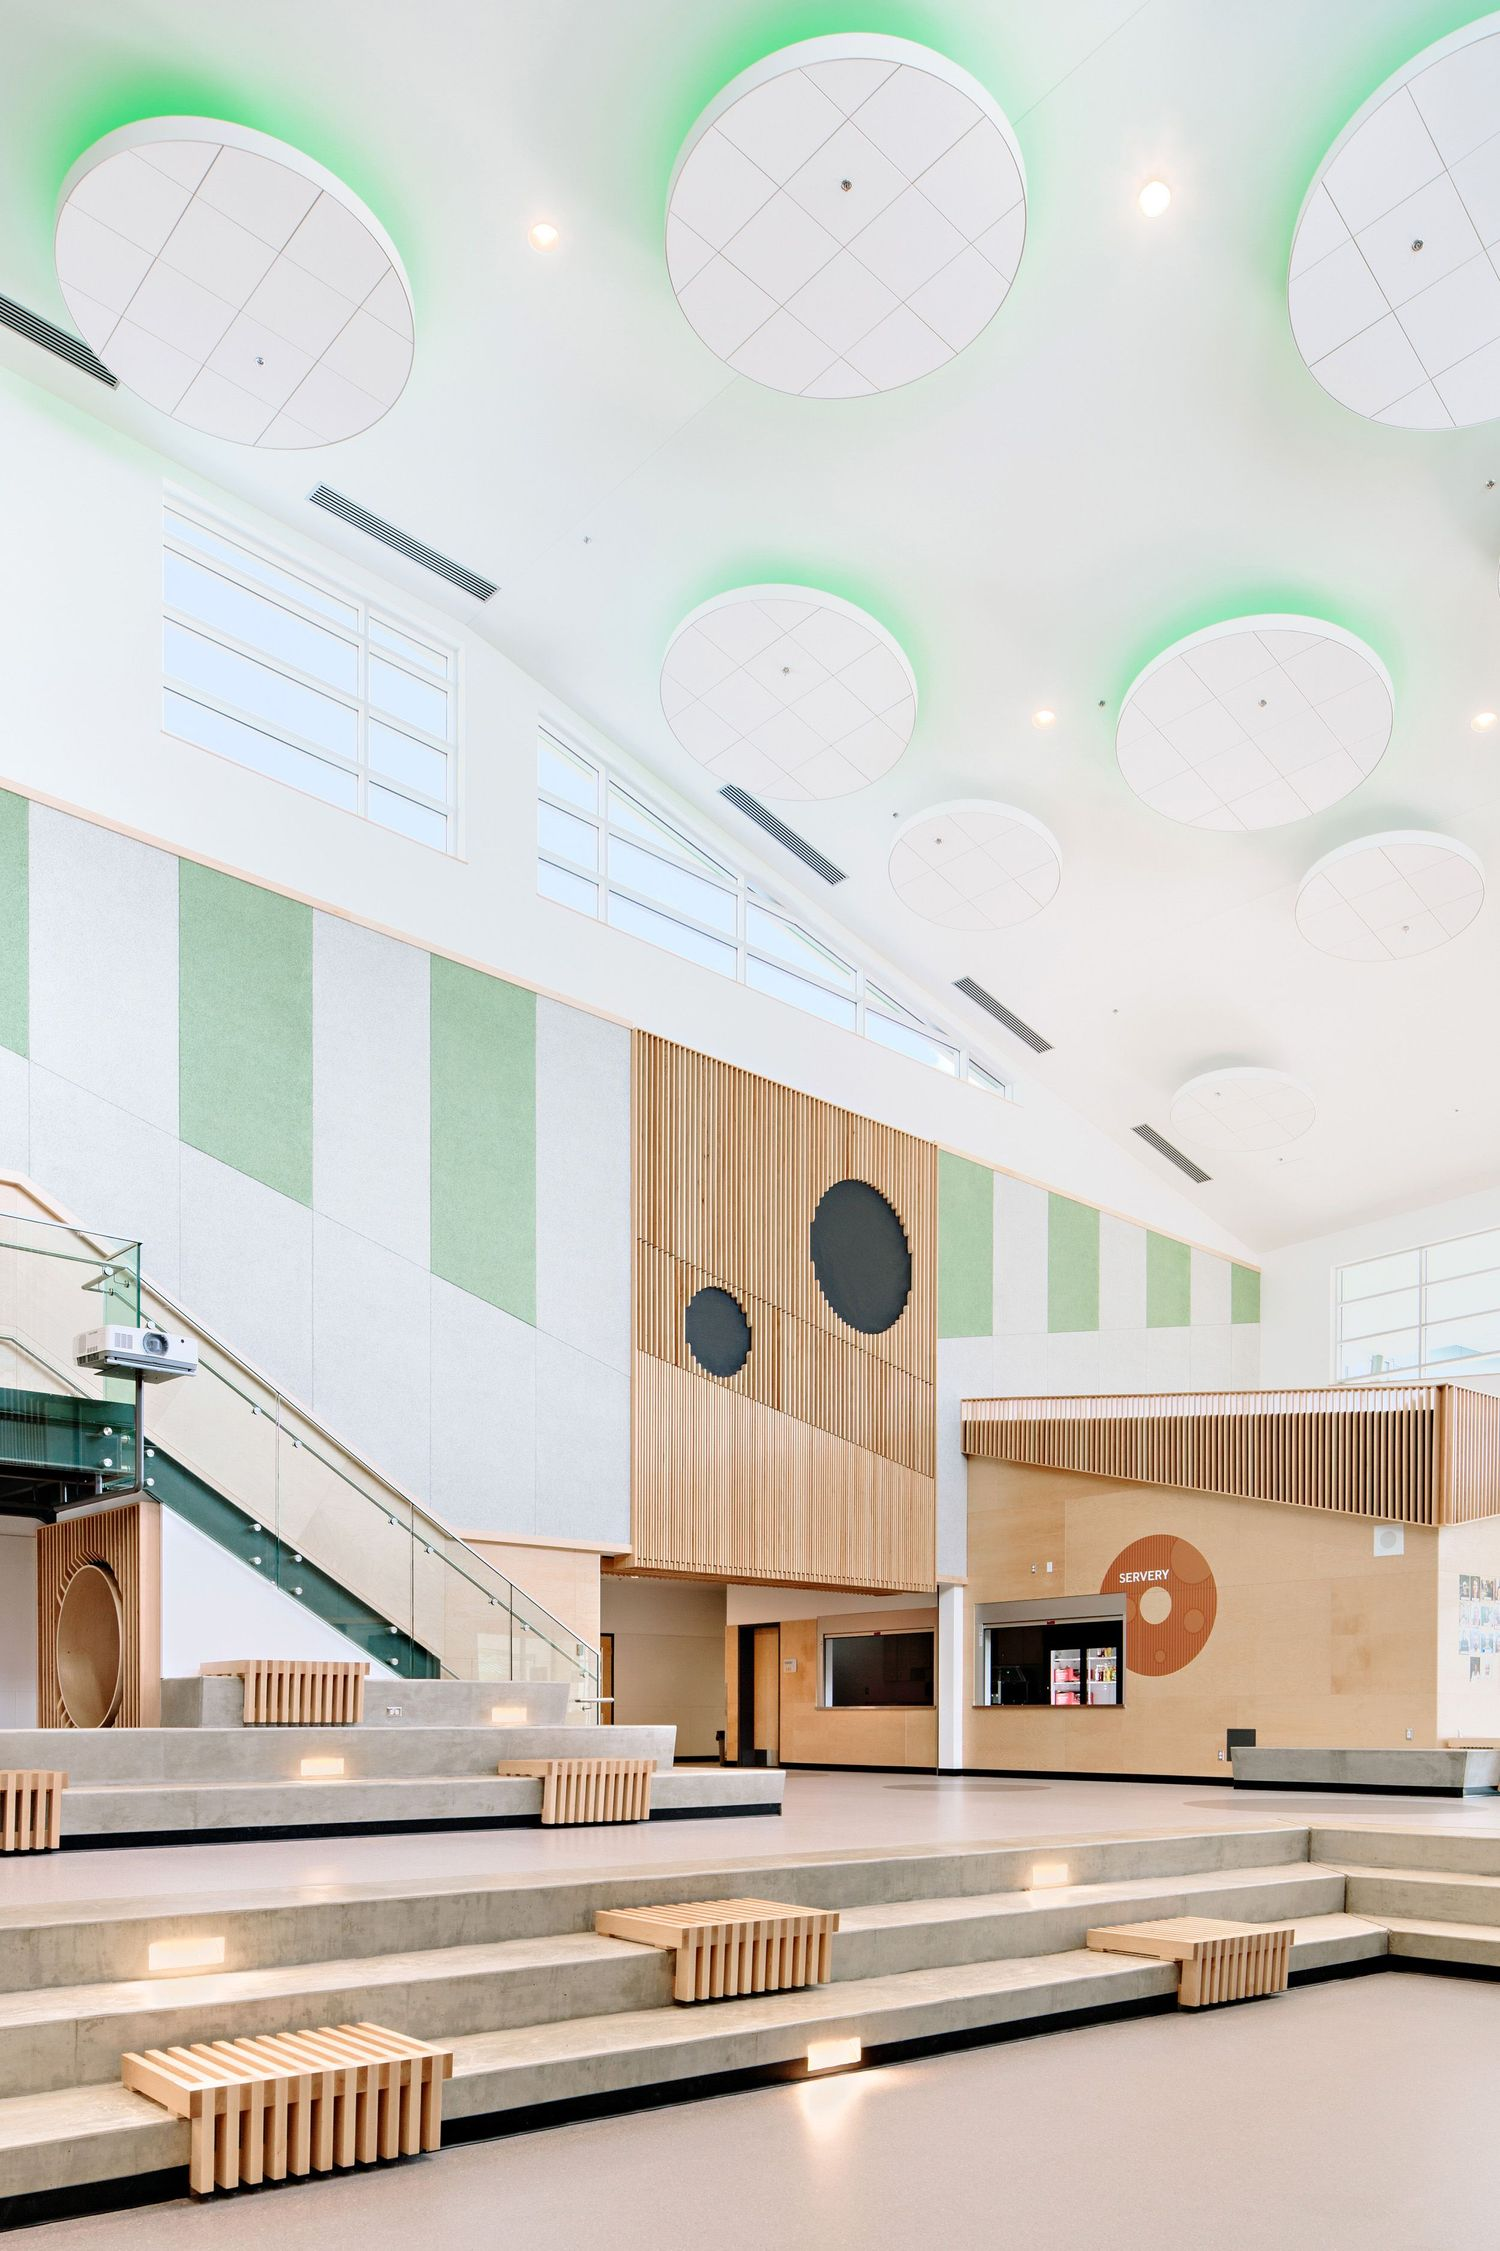 interior school ceiling light domes